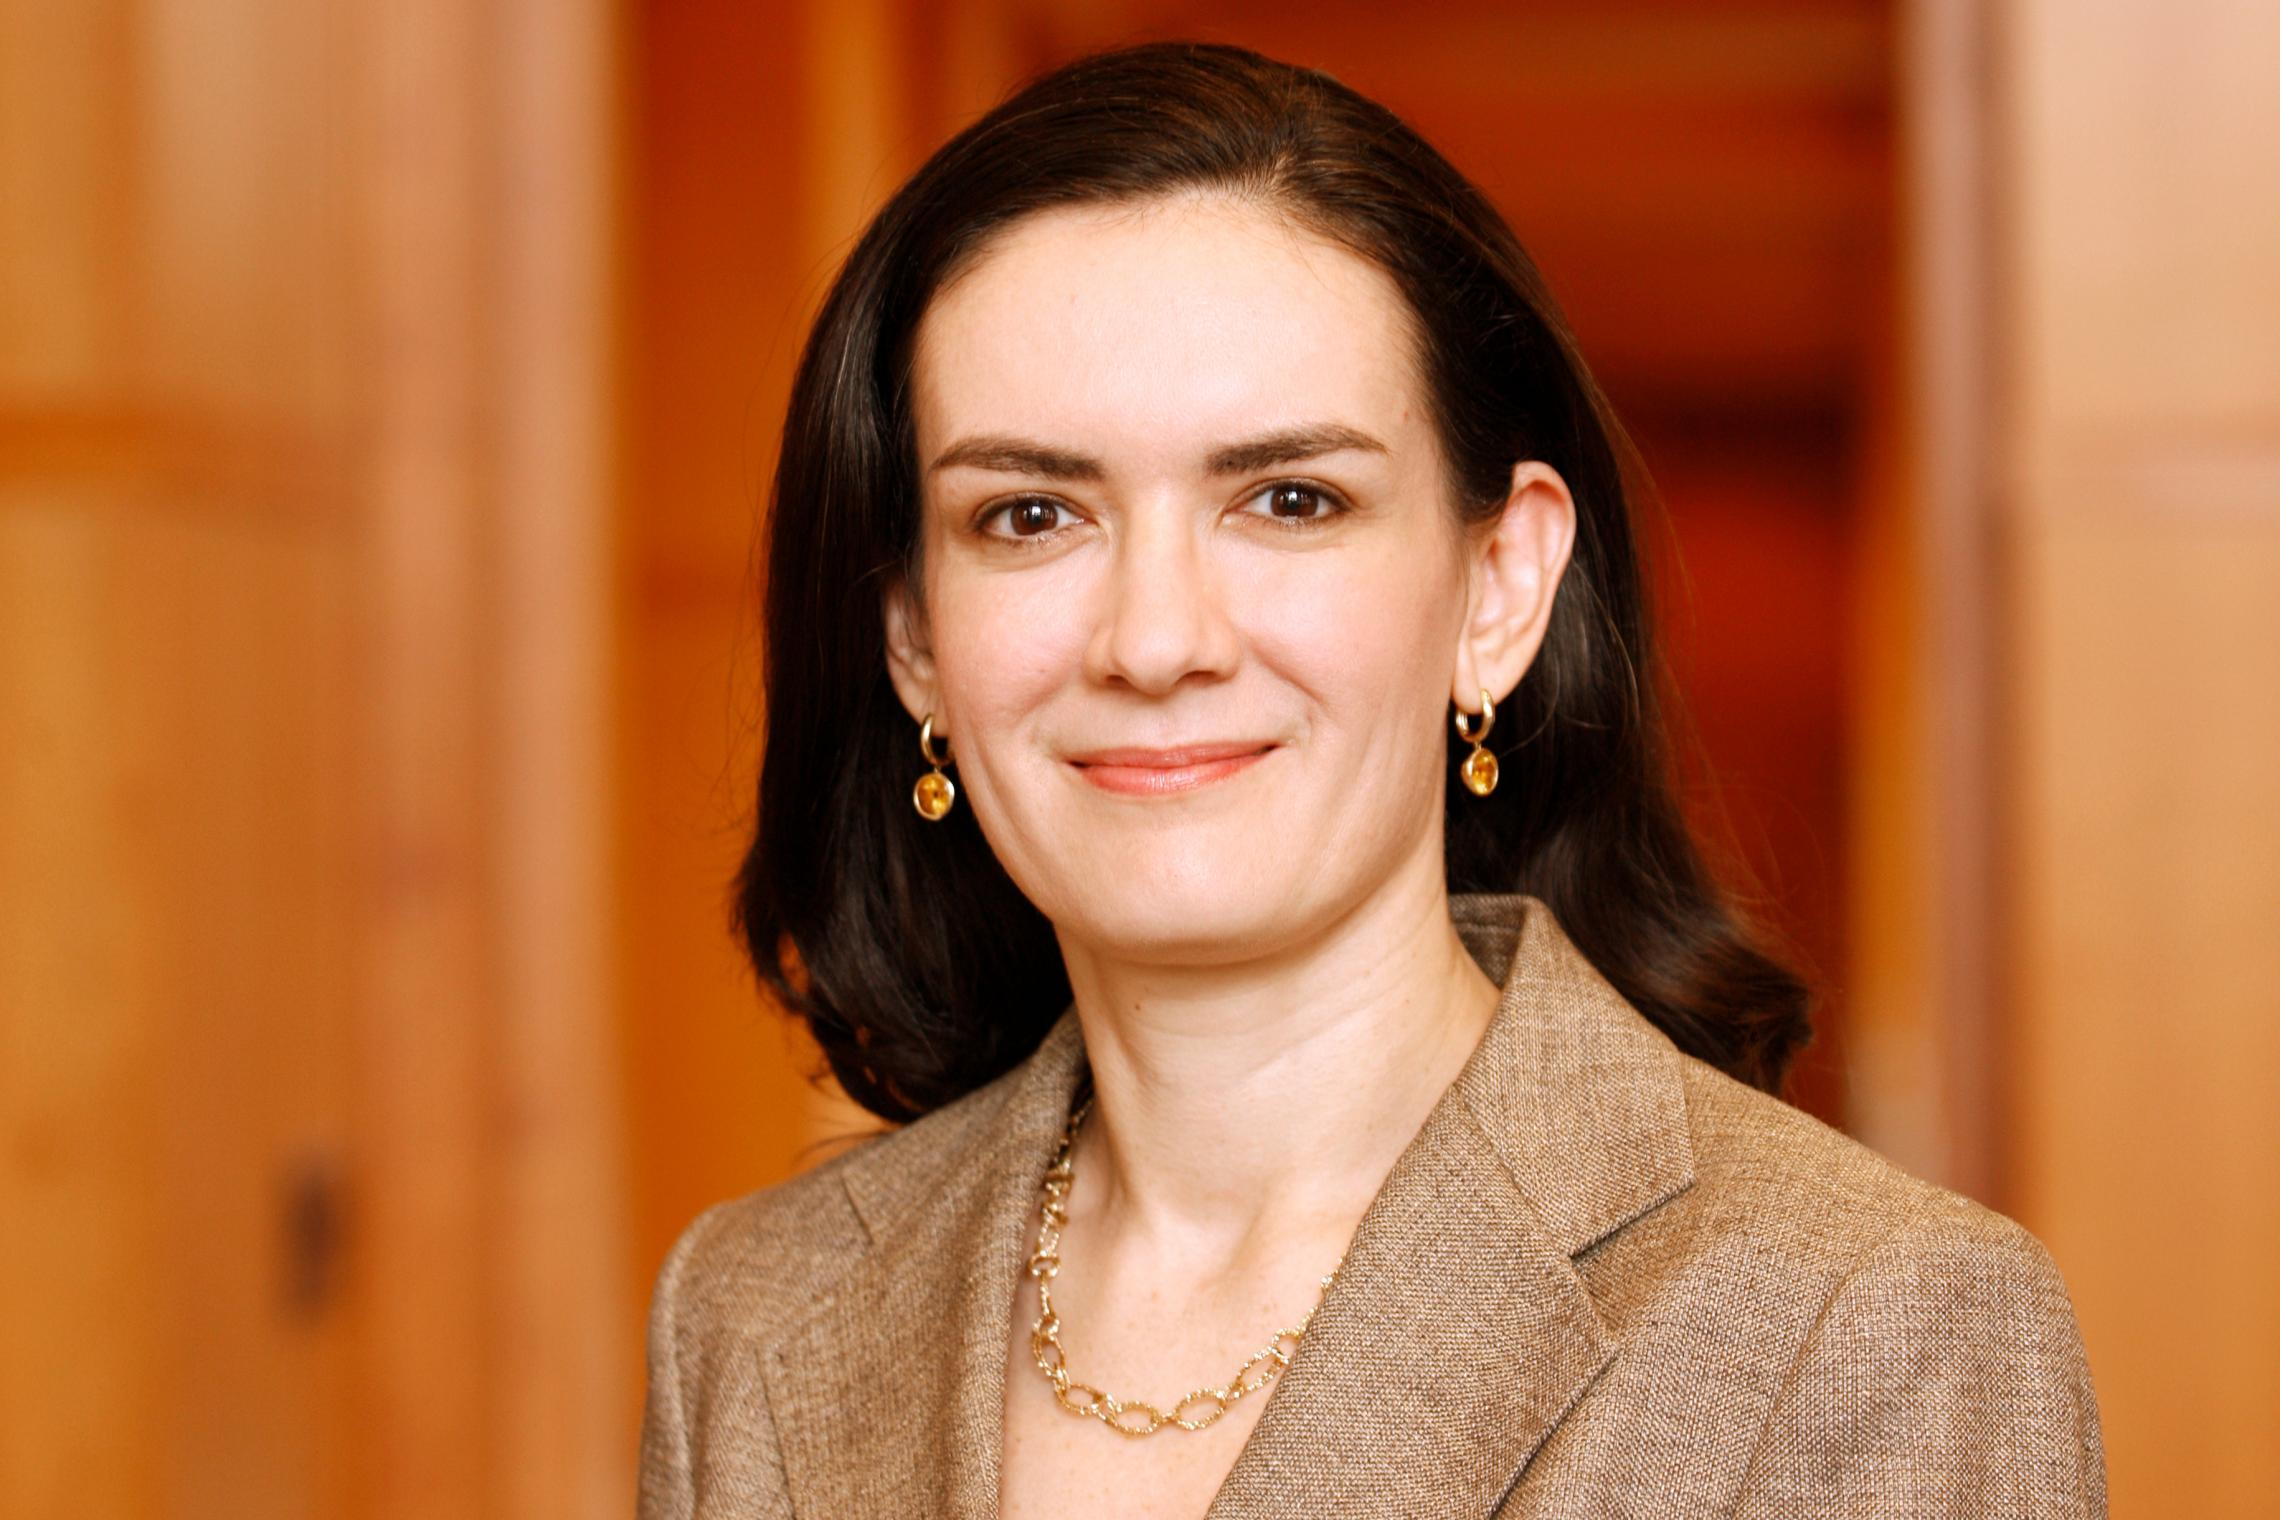 School of Law professor Ruth Mason co-authored a brief cited by Justice Anthony Kennedy in his opinion for the court.